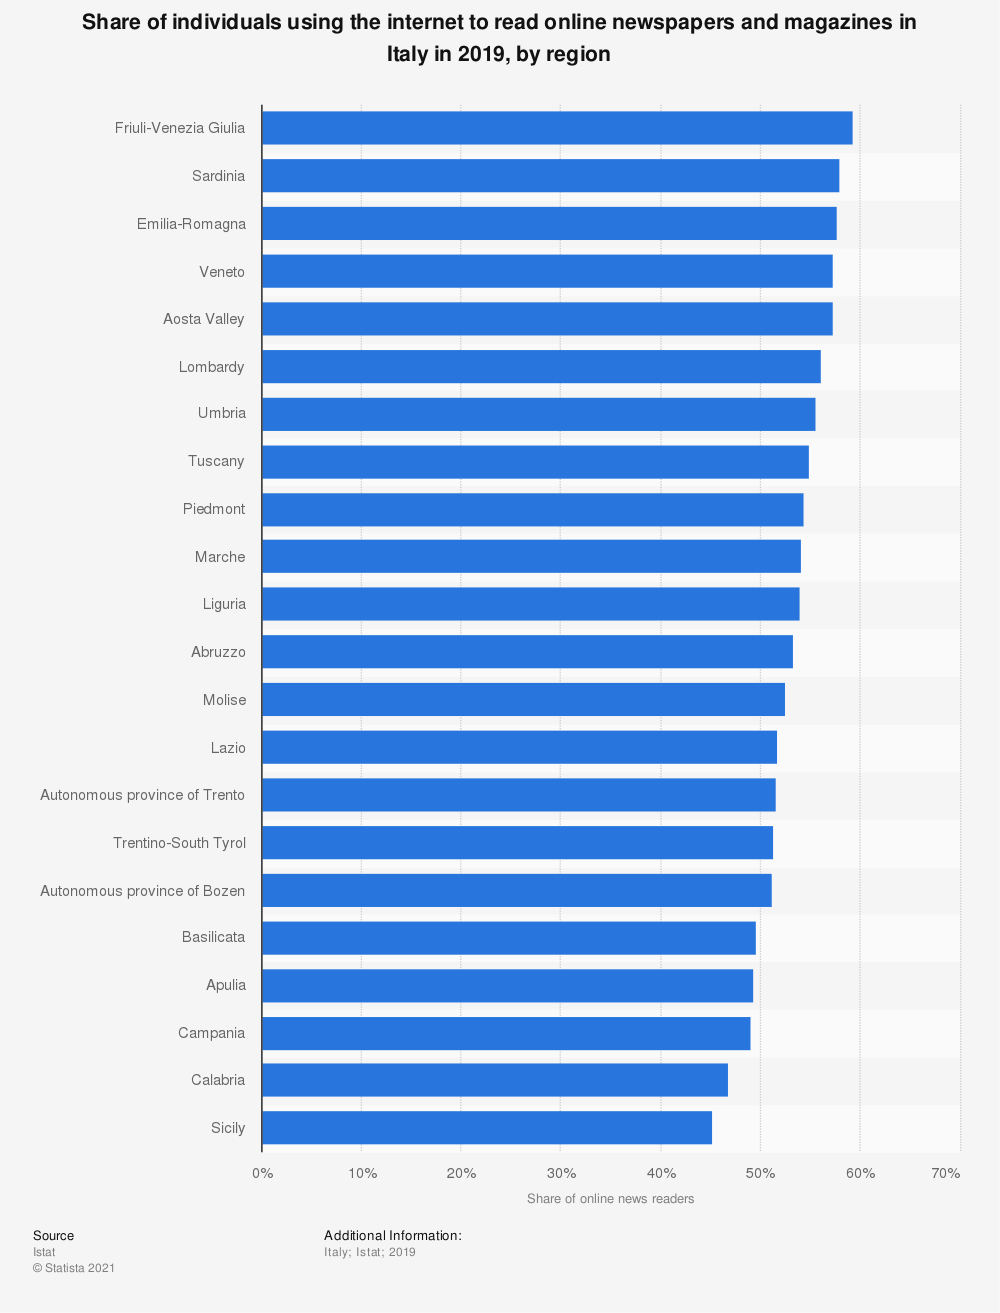 Statistic: Share of individuals using Internet to read online newspapers and magazines in Italy in 2019, by region | Statista